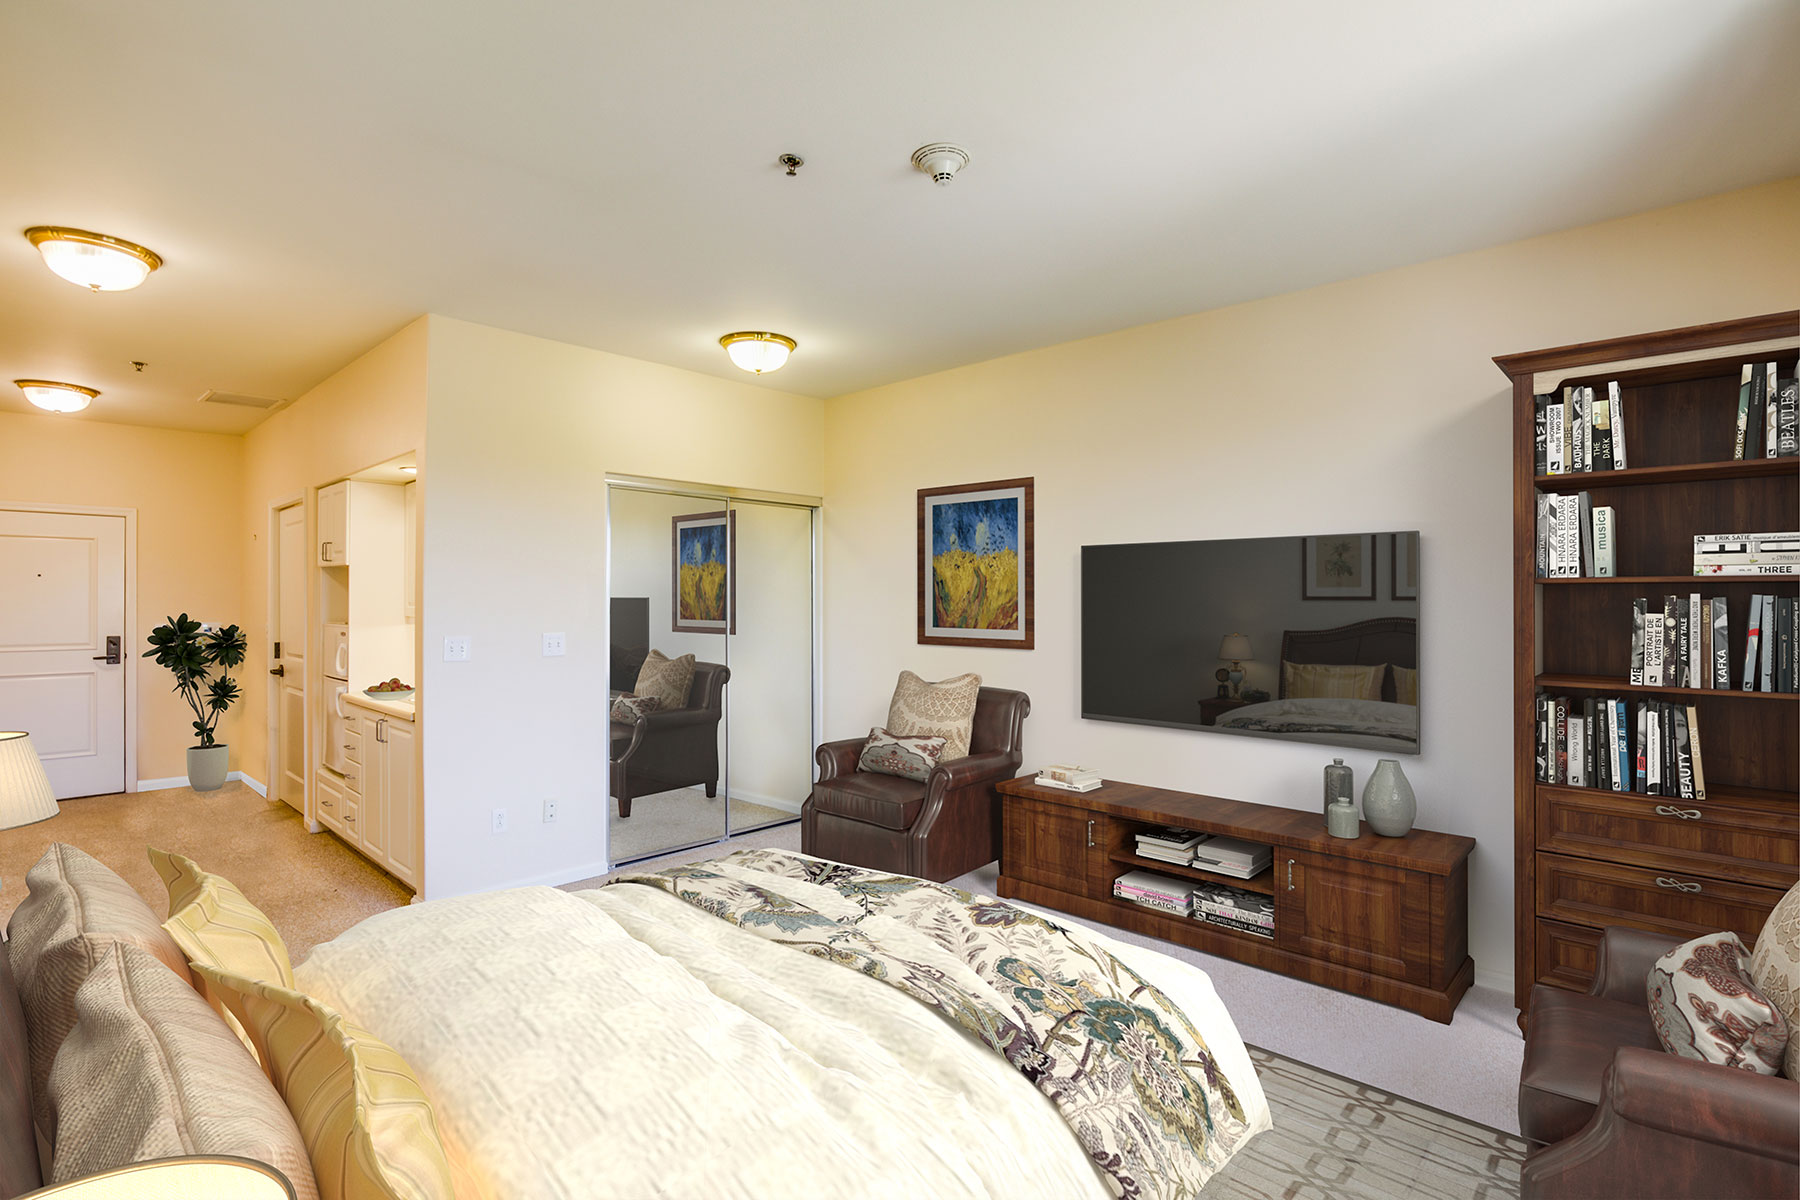 Assisted Living resident room.